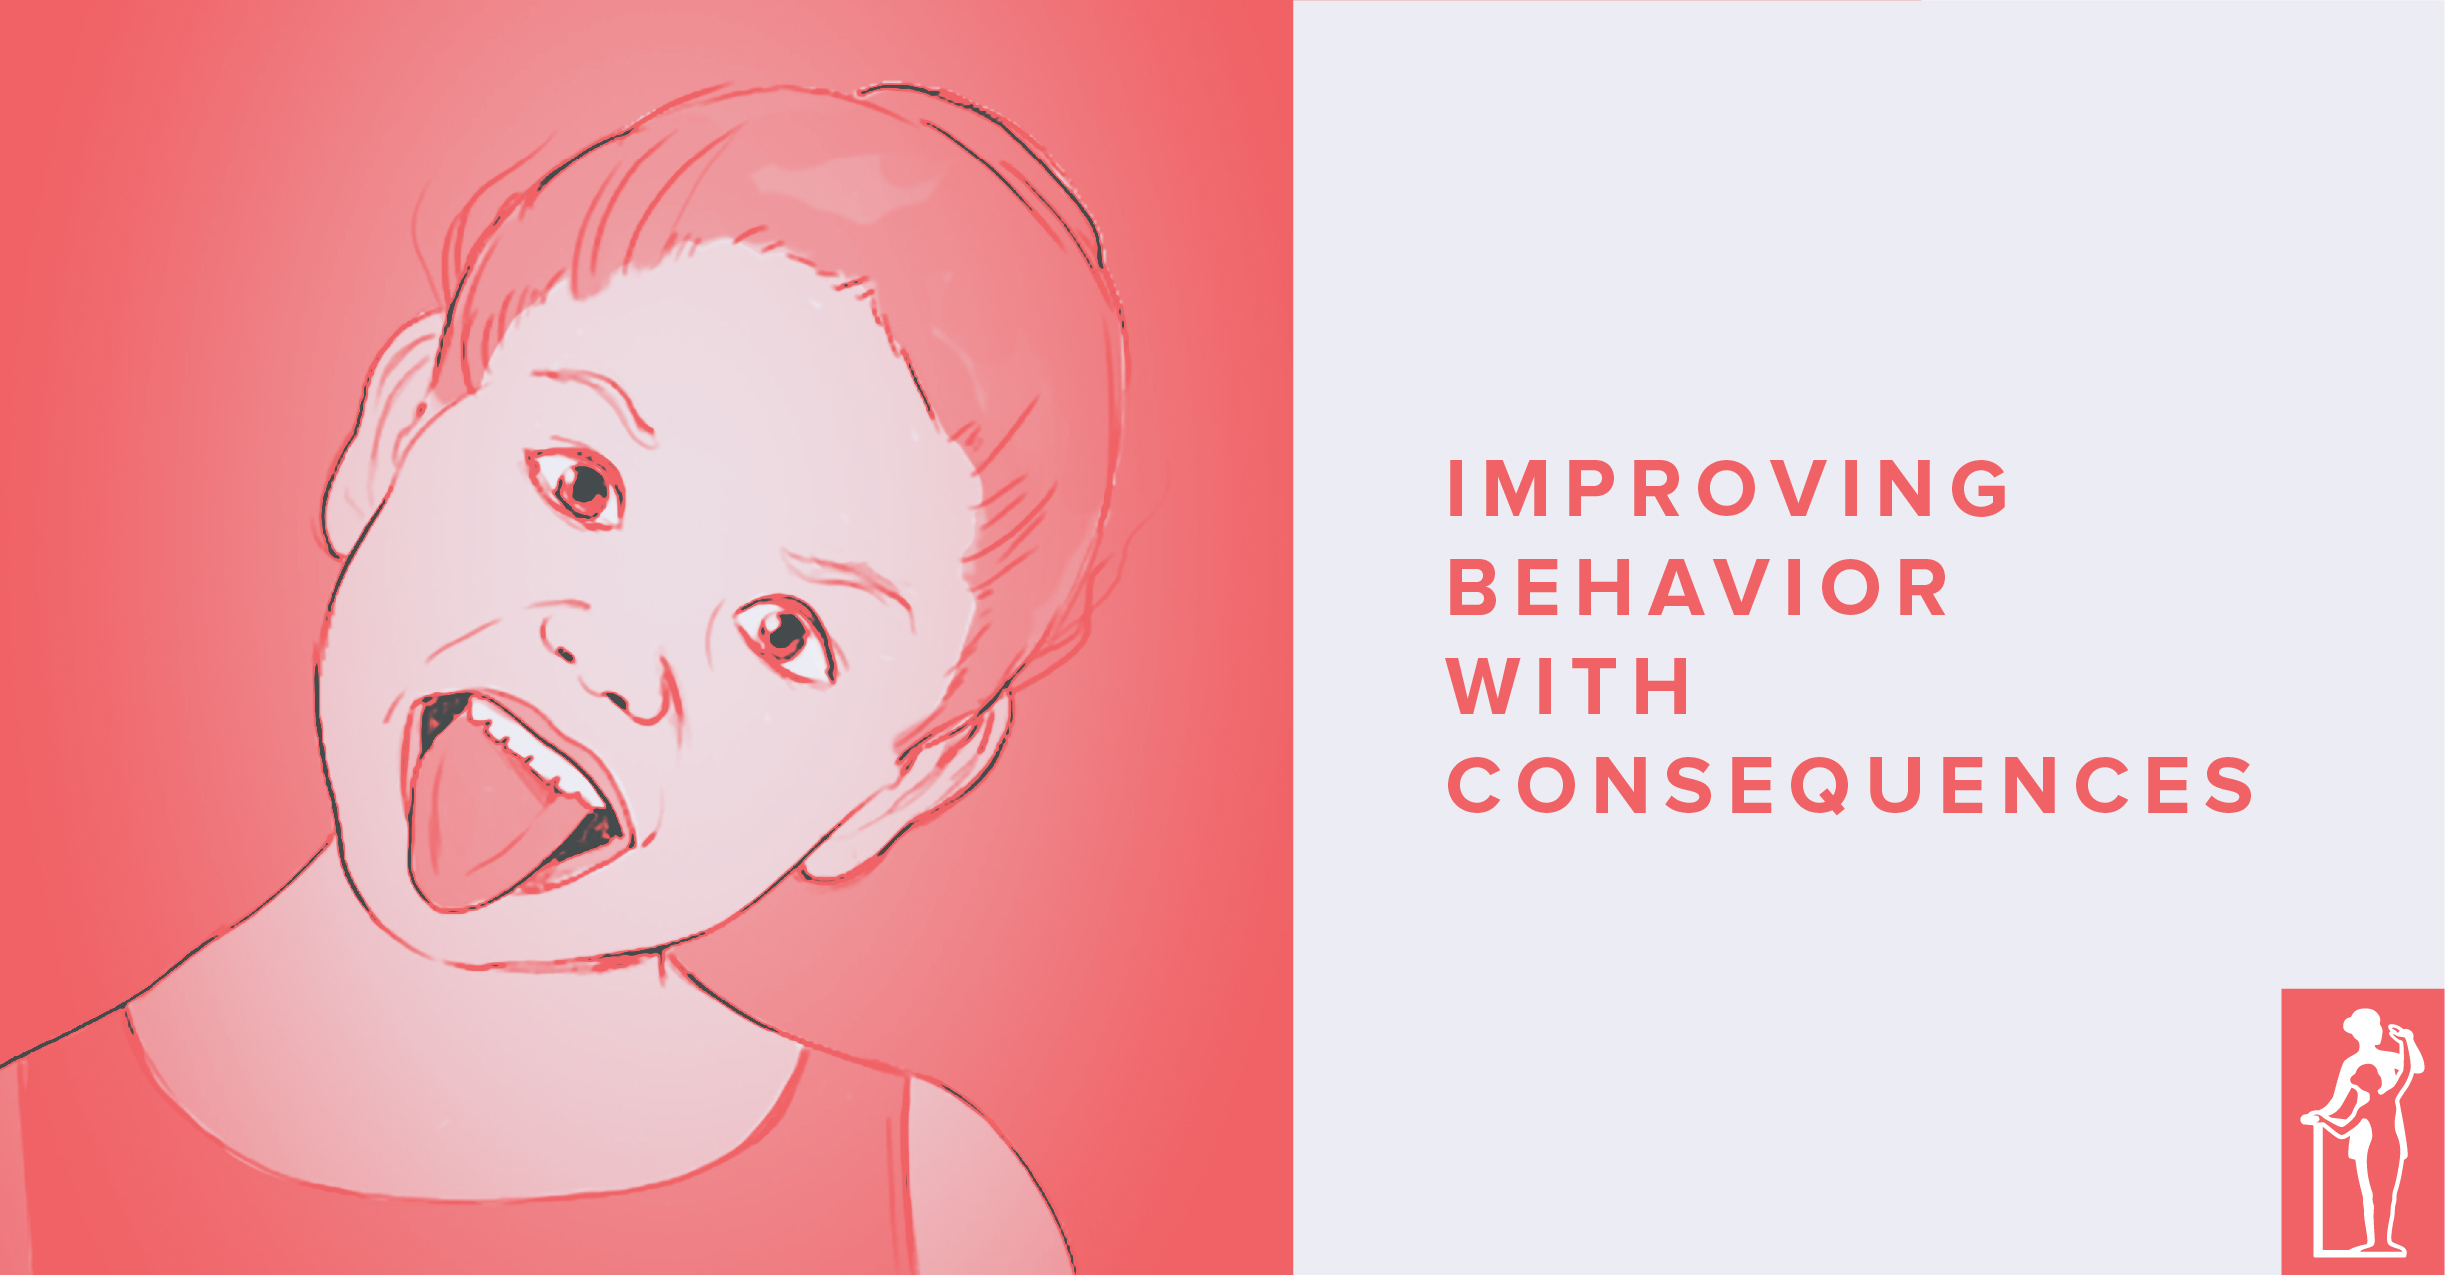 Improving Behavior with Consequences